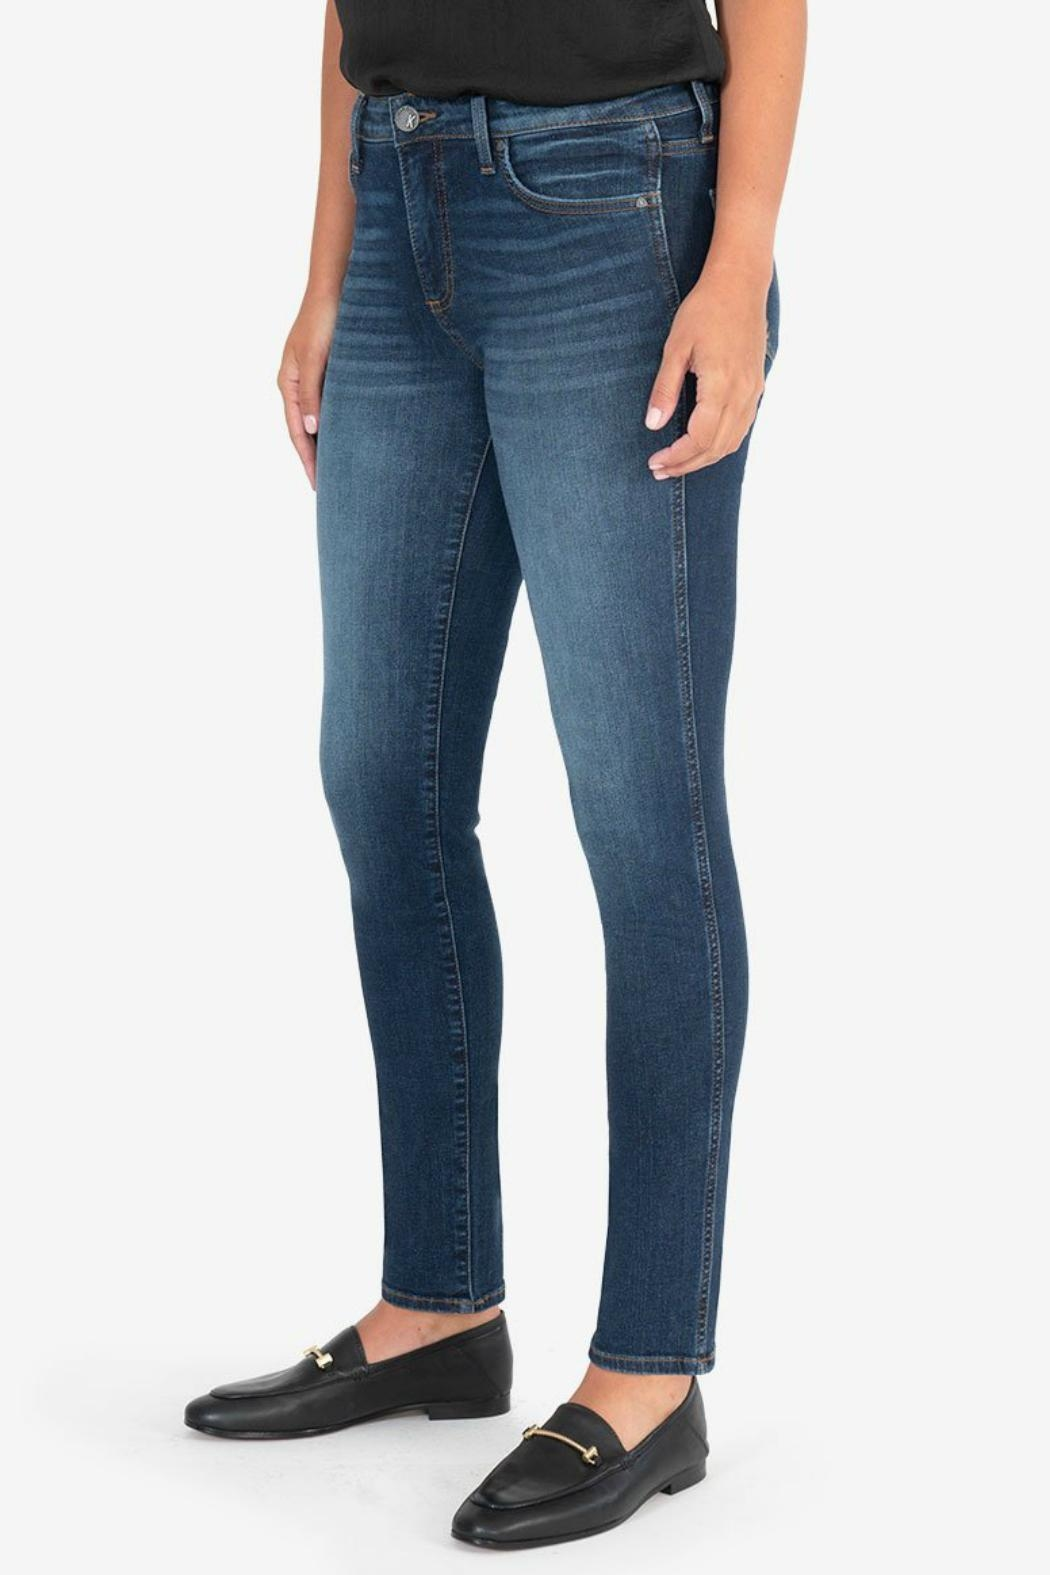 Kut from the Kloth Diana Fab-Ab Released-Fit-Skinny - Side Cropped Image